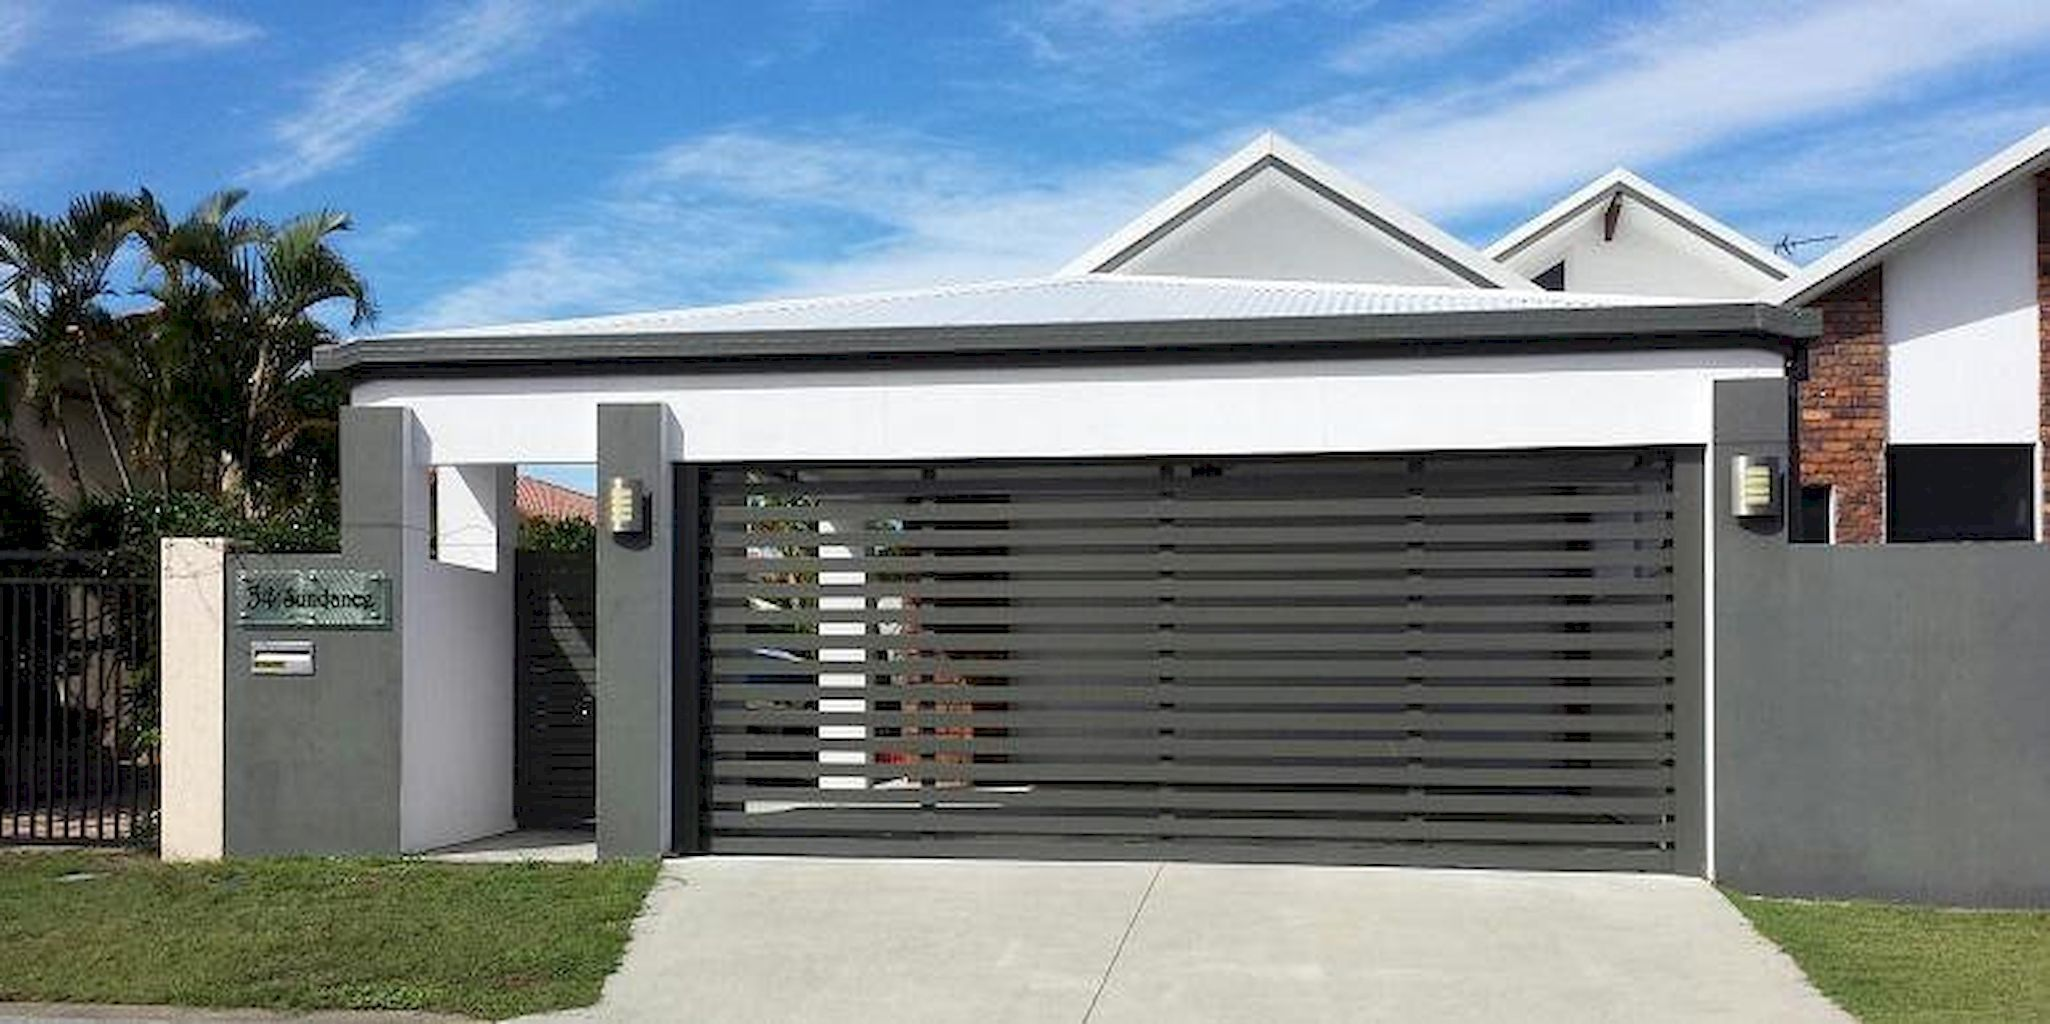 55 adorable modern carports garage designs ideas modern for Carport garages